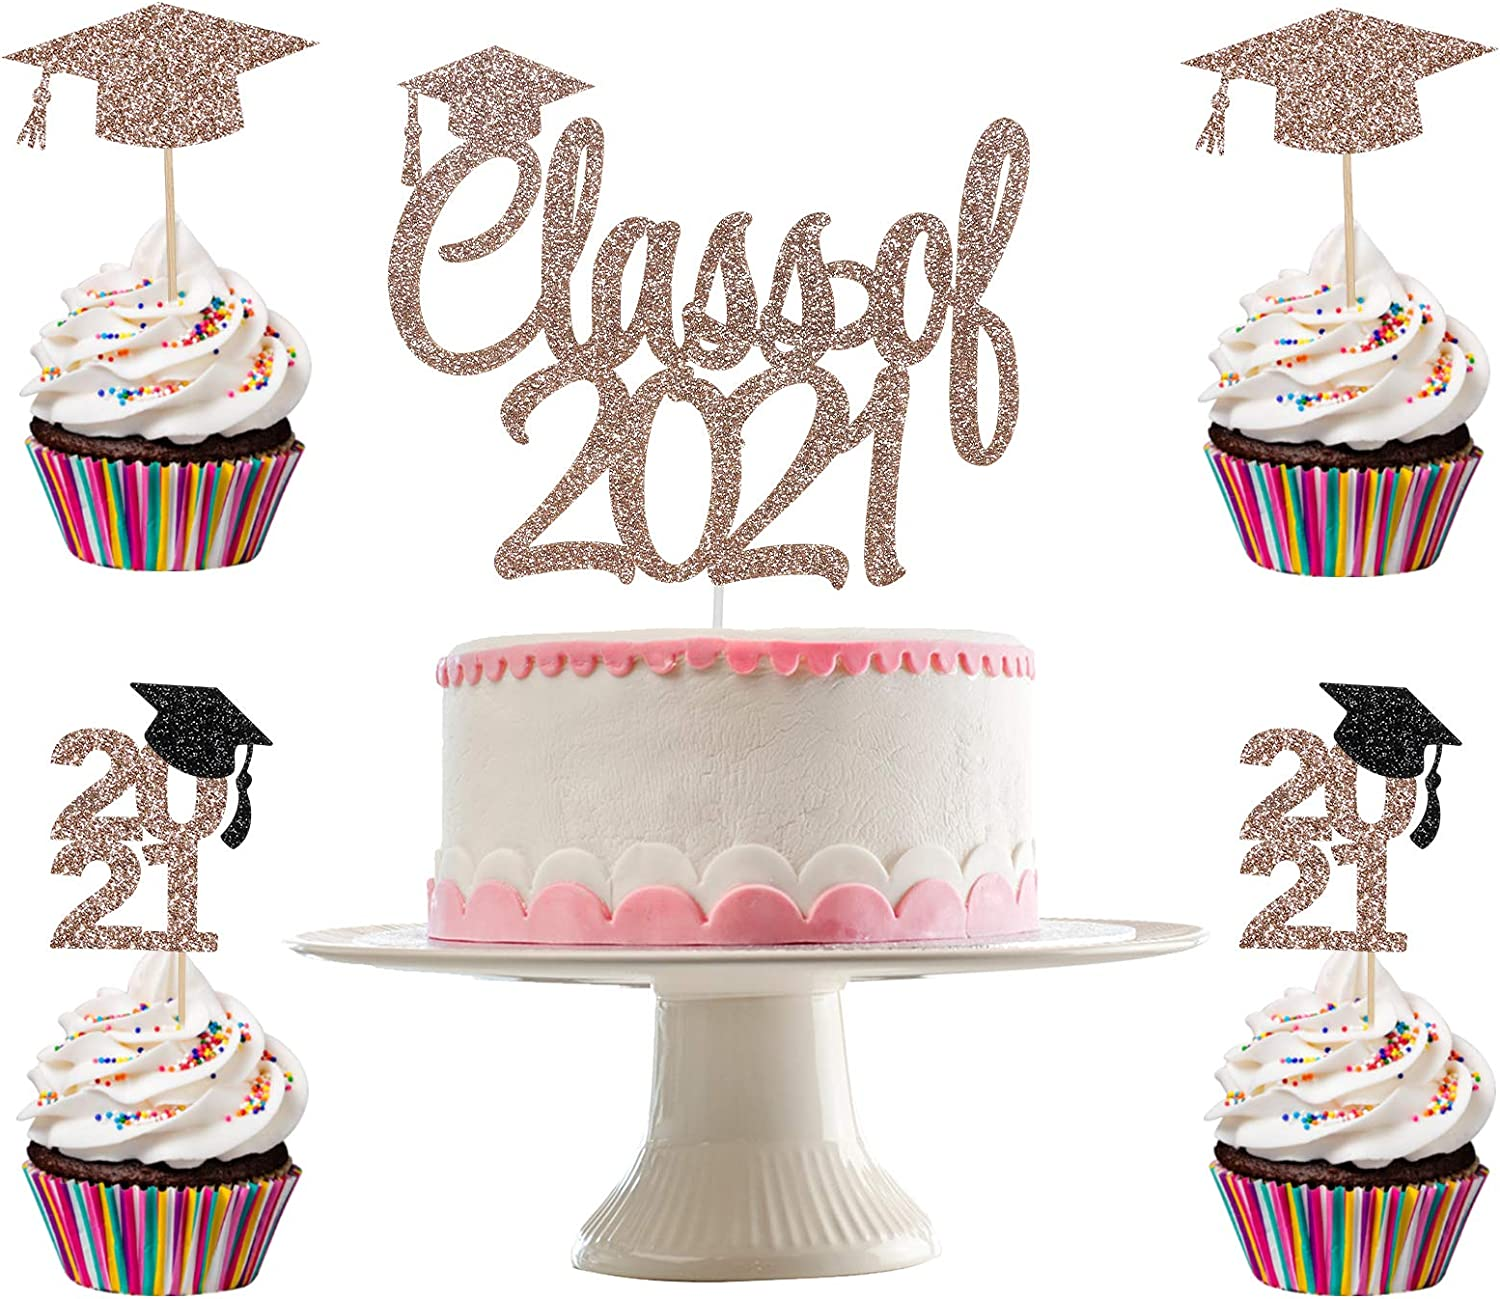 2021 Graduation Party Decoration Supplies Rose Gold Graduation Decorations 2021 Graduation Cake Topper 2021 Rose Gold Glitter Class of 2021 Cake Topper and 24Pcs Graduation Cupcake Toppers 2021